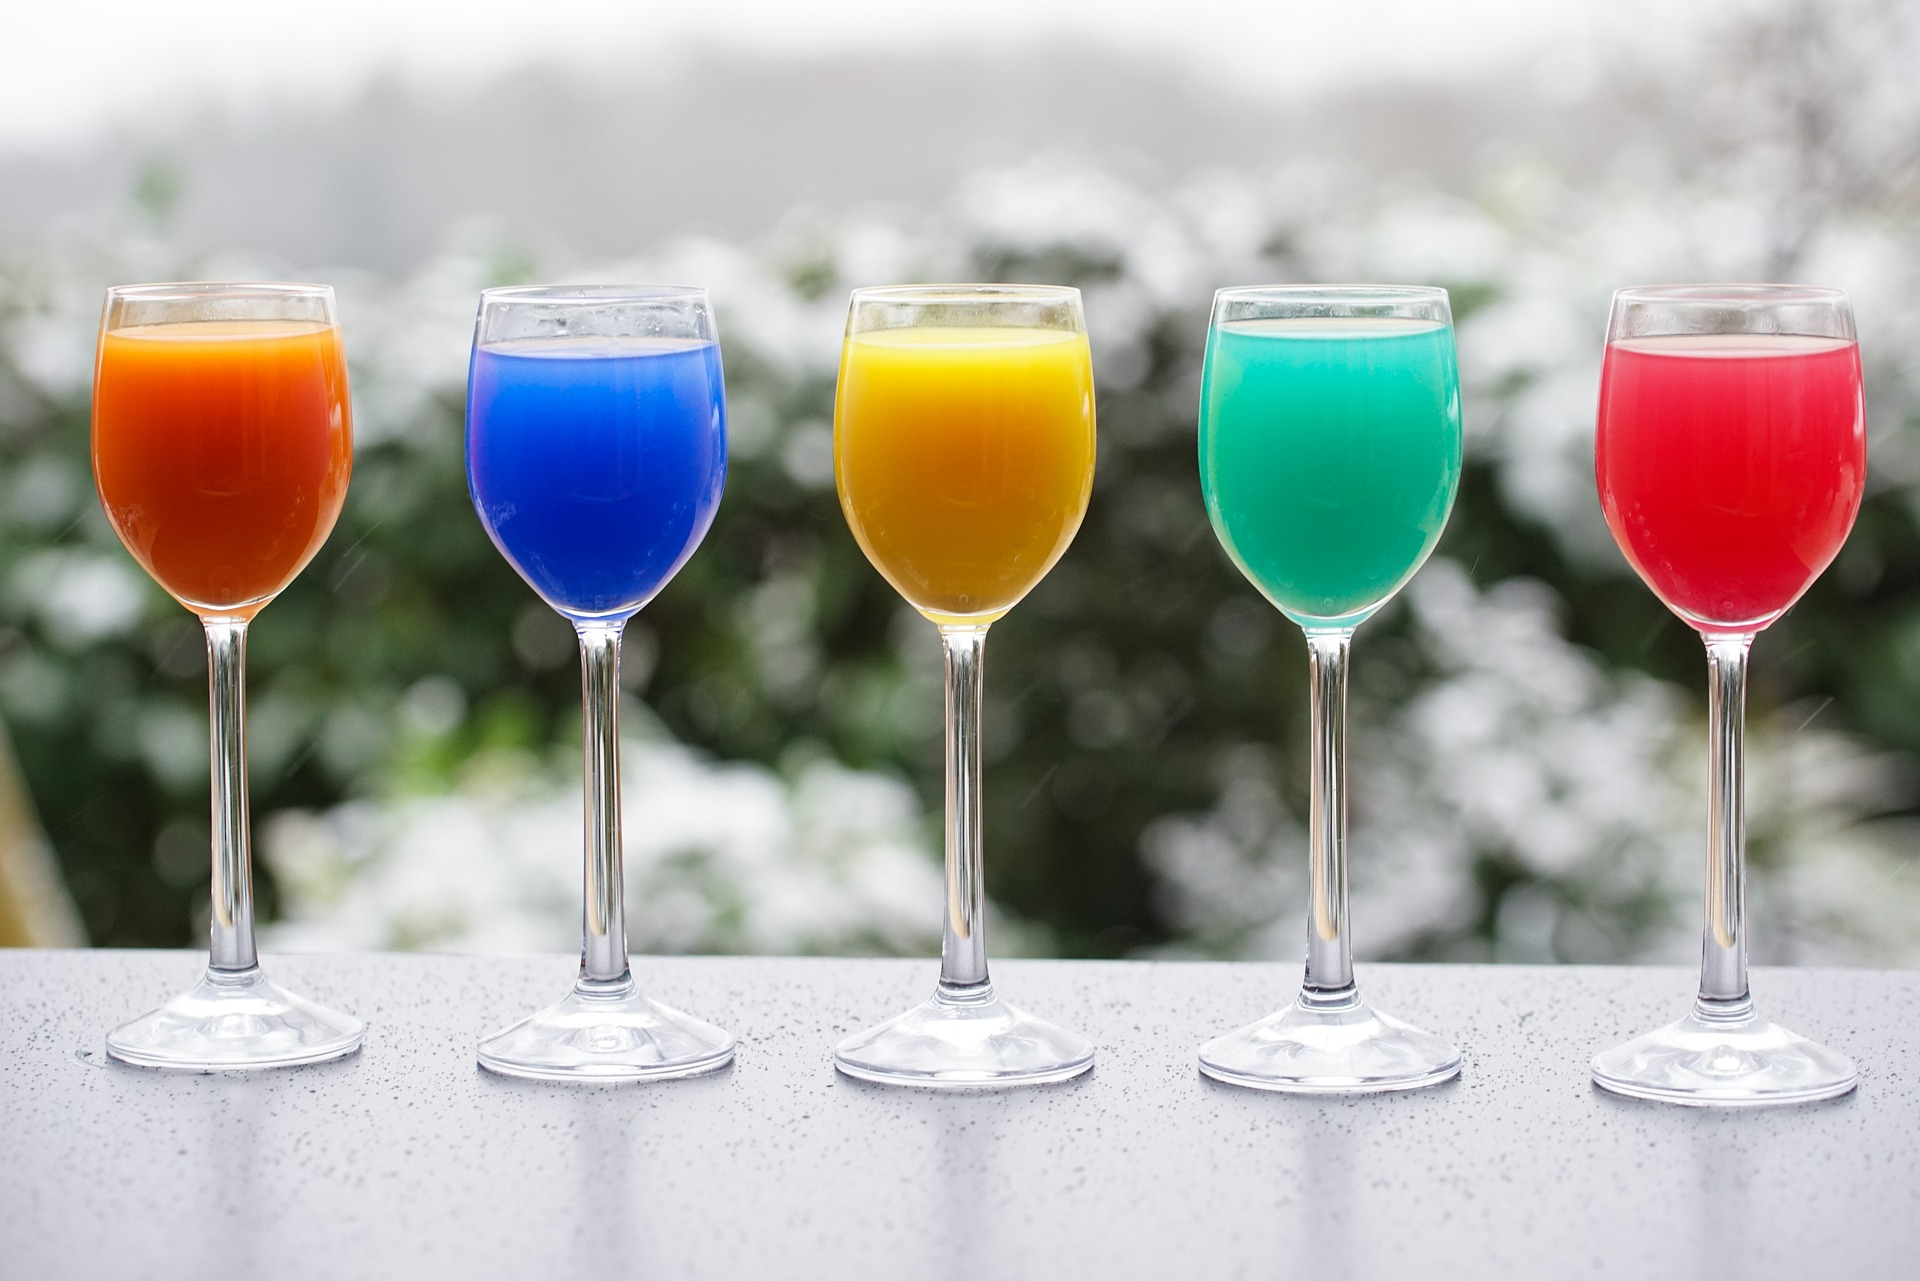 colorful-drinks-3252160_1920